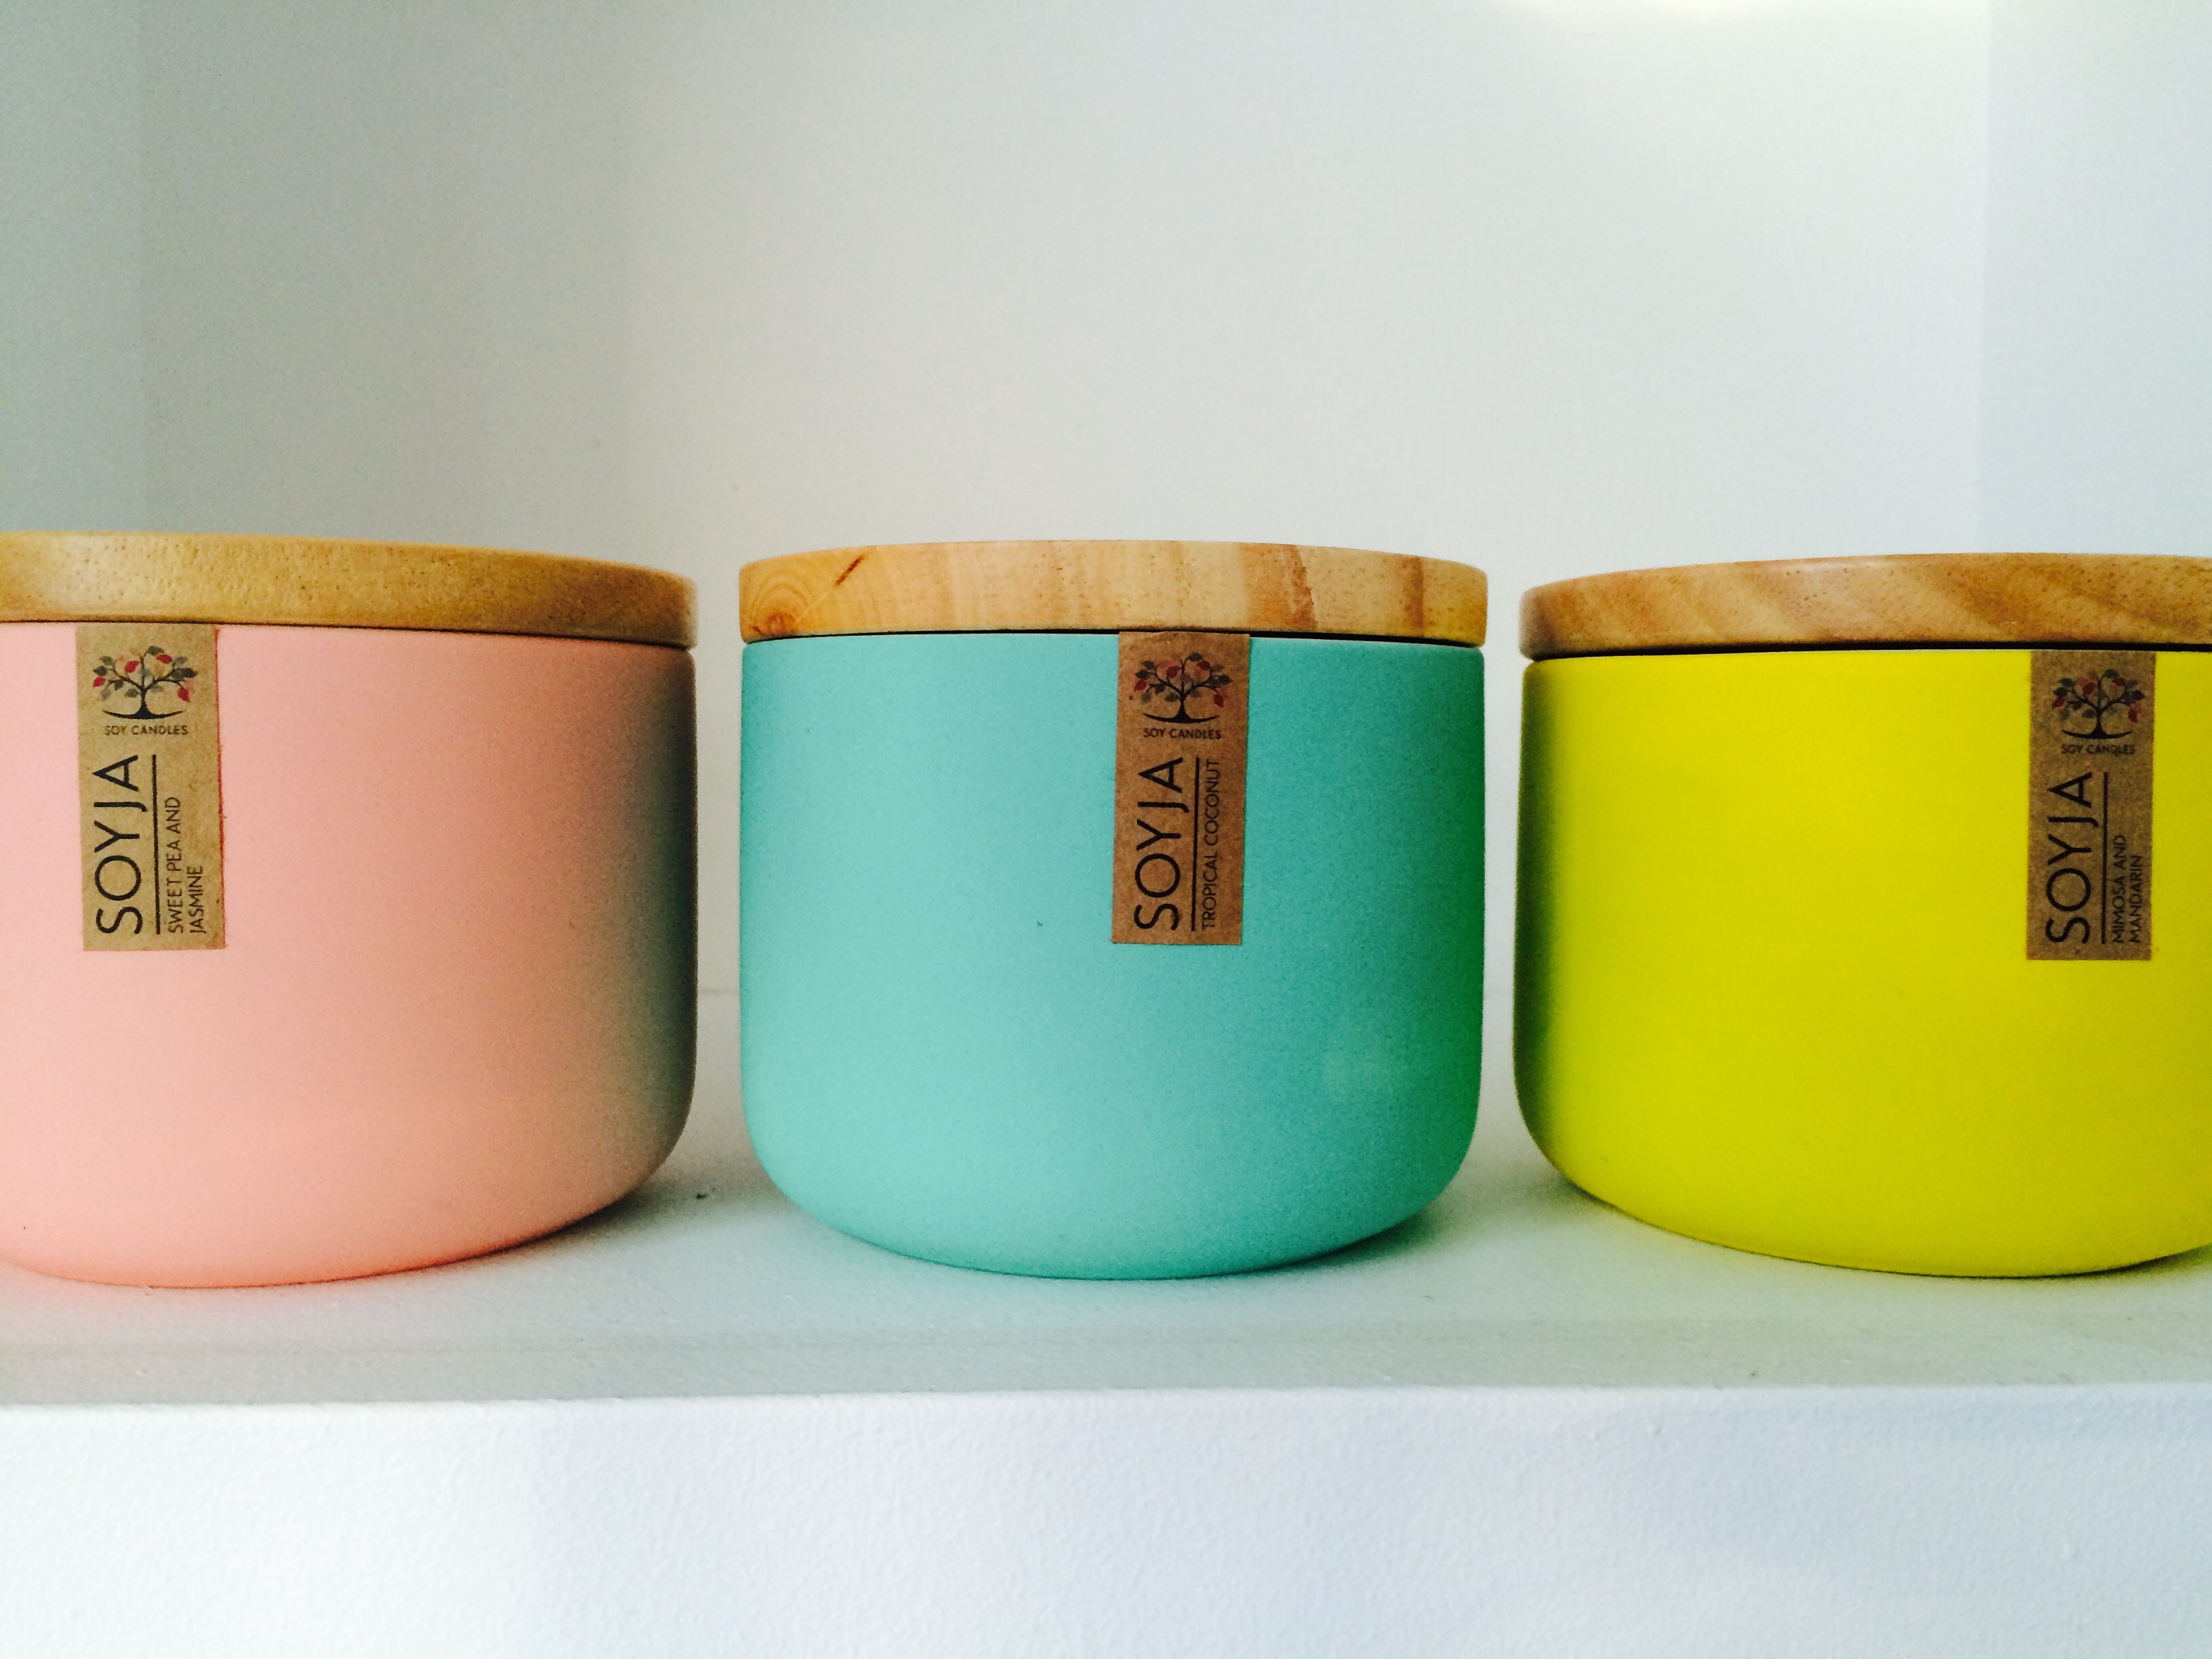 Candles from soyja.com.au - Price ranges from $29 for this size and $45 for larger size (not seen in the this pic).